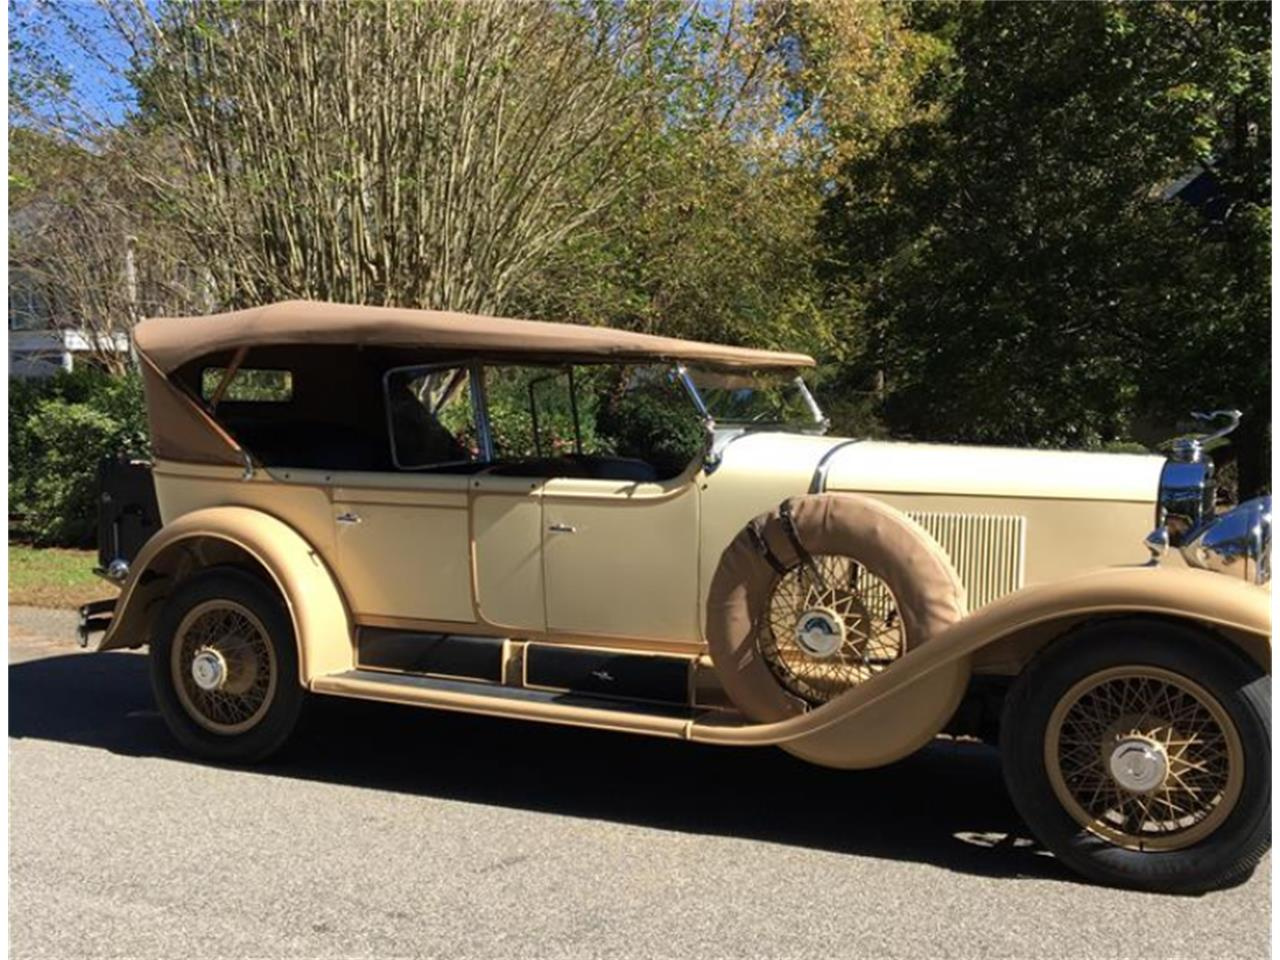 Large Picture of Classic '29 Cadillac 341-B located in Sumter South Carolina Offered by a Private Seller - N4OX